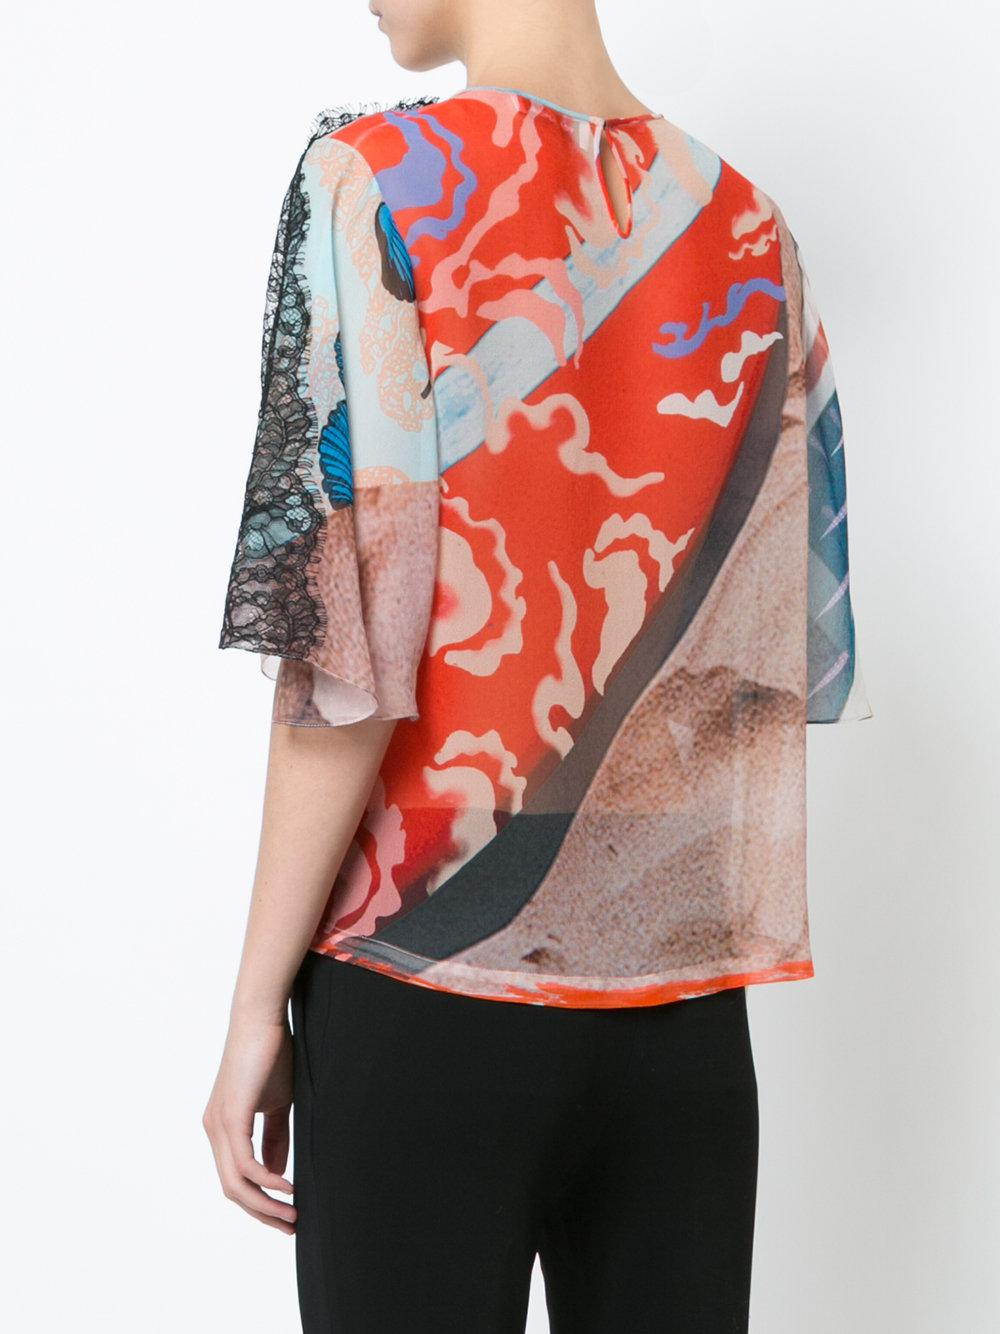 surfboard print blouse - Red Yigal AzrouËl Buy Cheap Lowest Price Geniue Stockist Online Sale Nicekicks Authentic Cheap Online kNdpAb